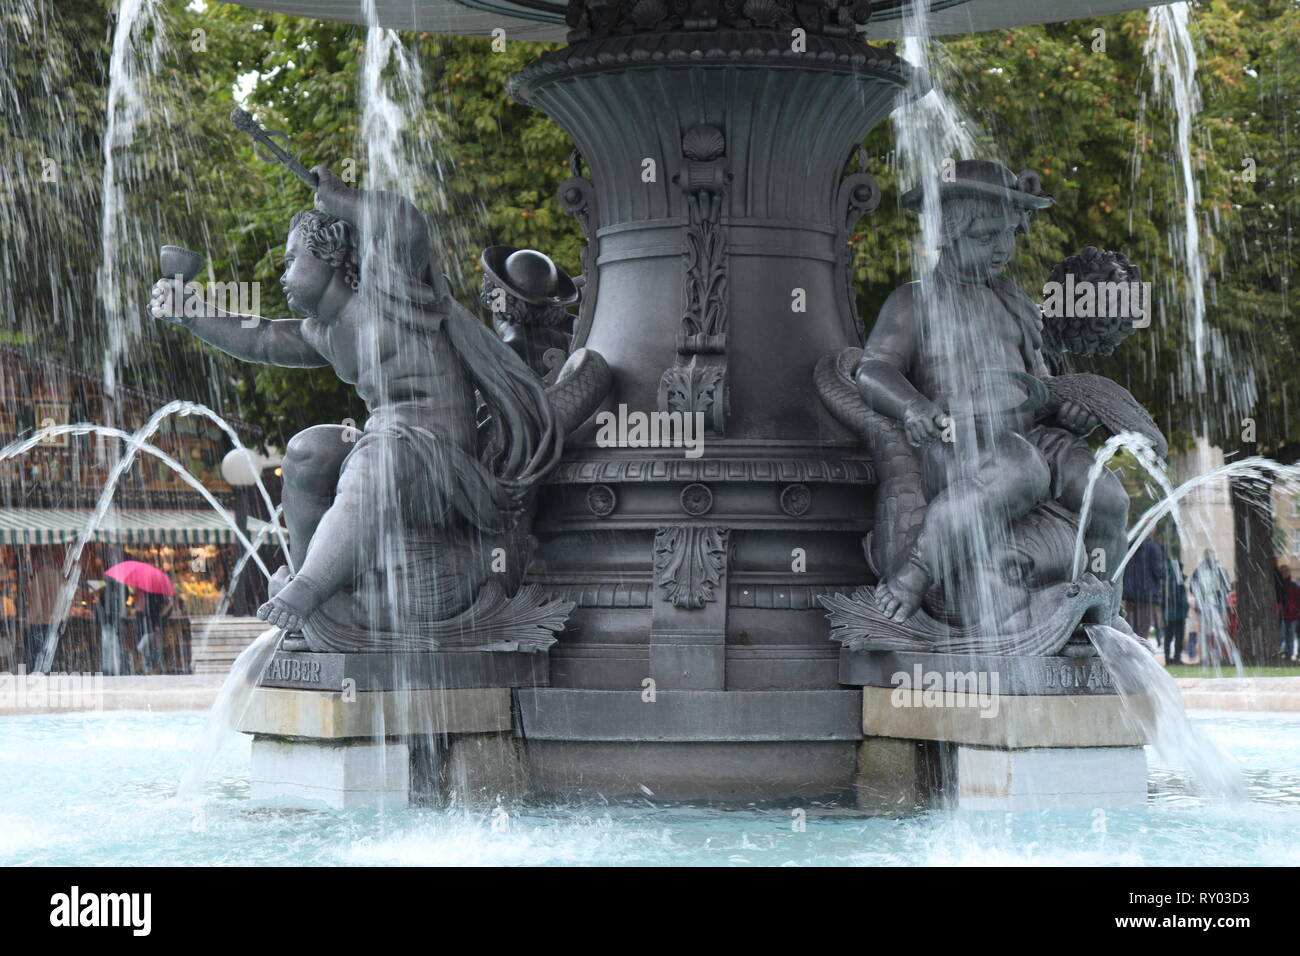 Fountain at Schlossplatz square , Neues Schloss (New Palace) in Stuttgart during a festival in October - Stock Image